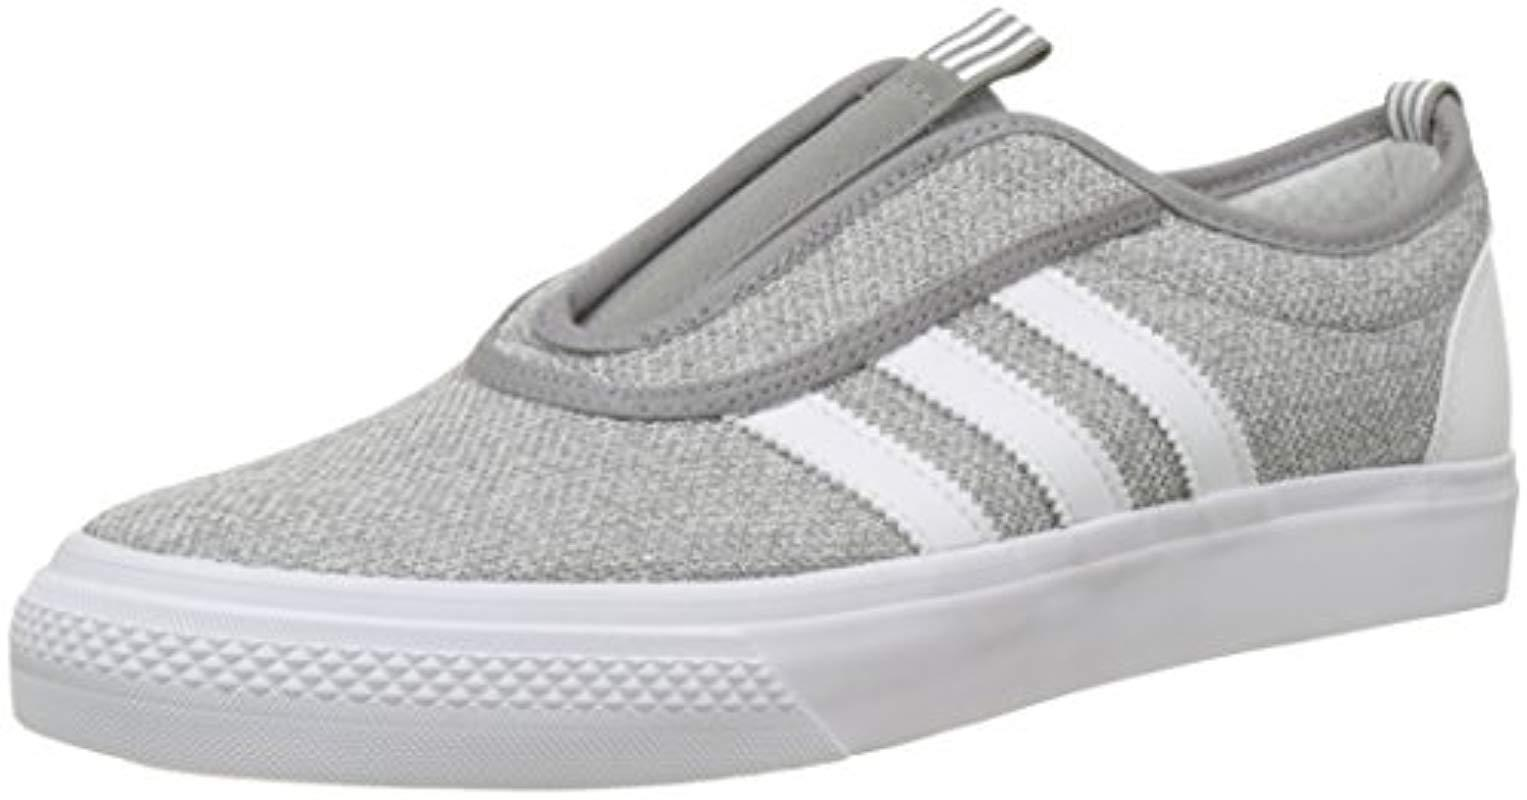 the latest 3f3f9 16289 adidas. Gray Unisex Adults Adi-ease Kung-fu Skateboarding Shoes